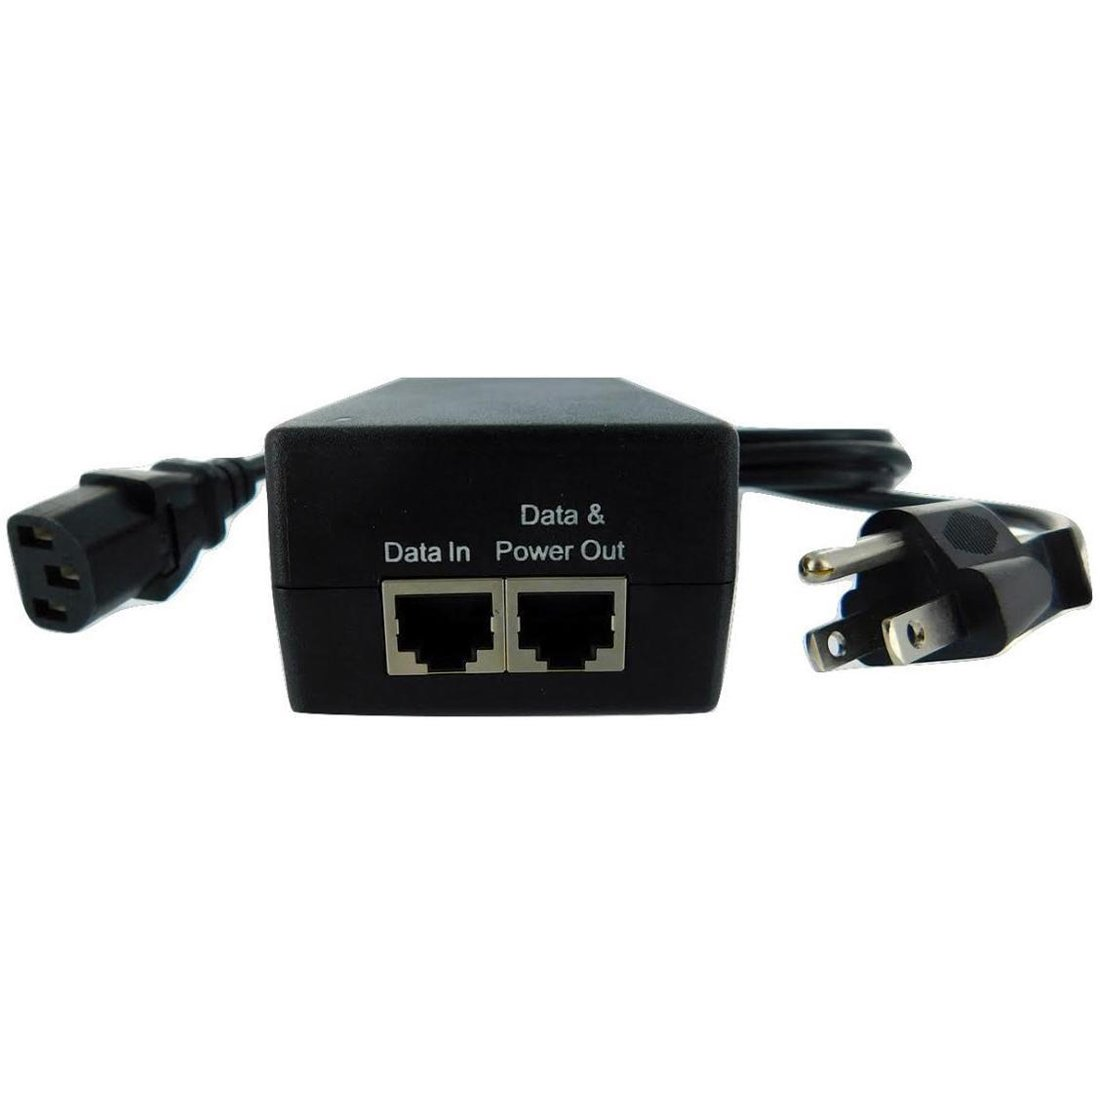 Ruckus Wireless 902-0180-US00 POE Injector (10/100/1000 Mbps, Includes US Power Adapter)